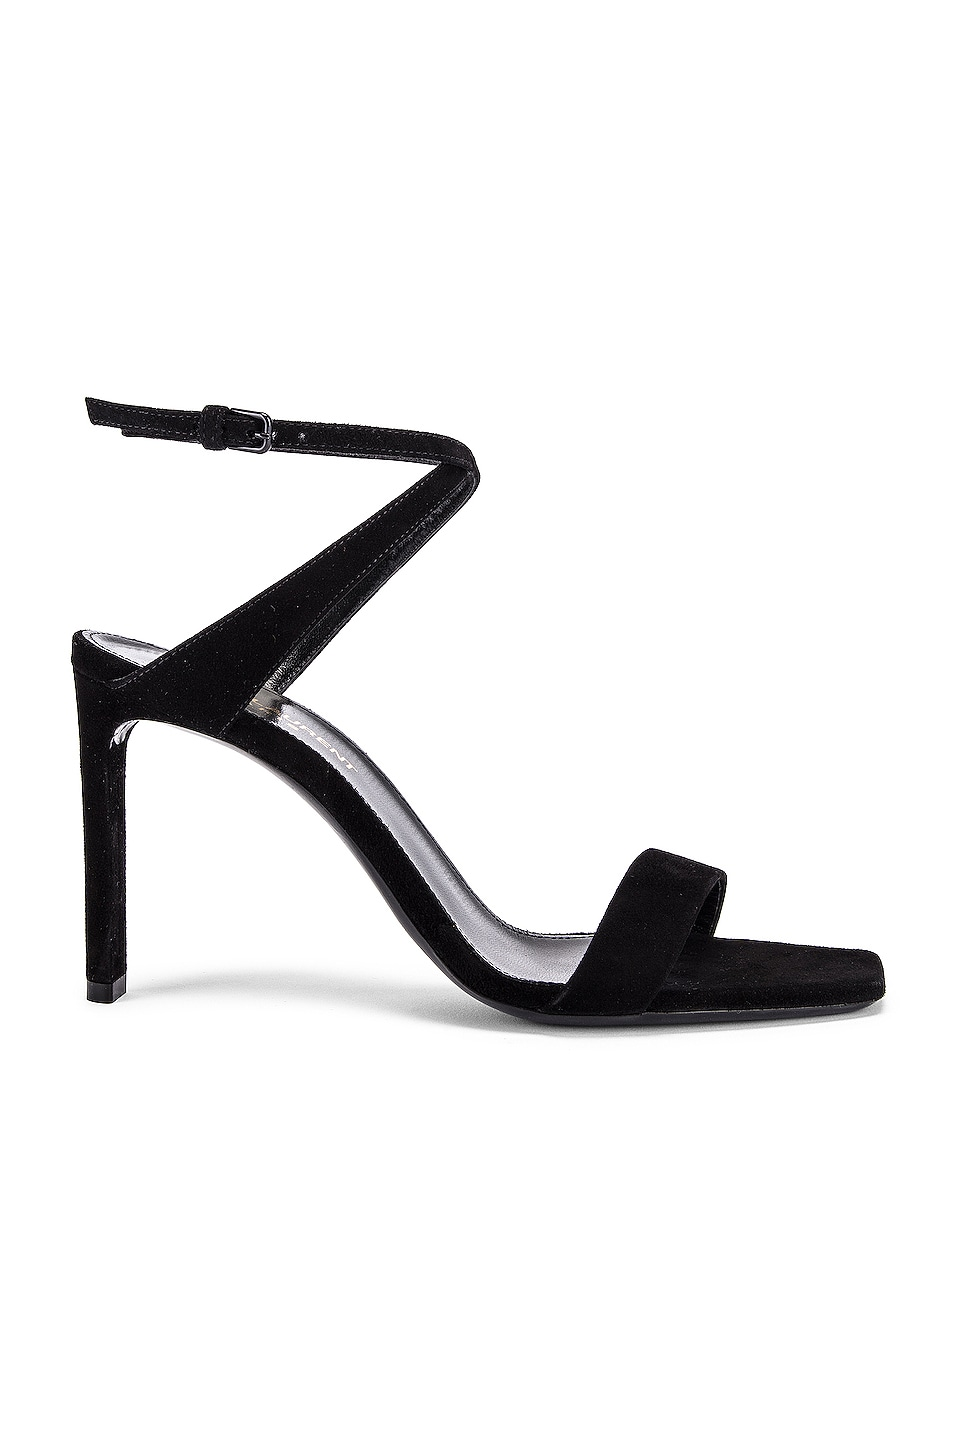 Image 1 of Saint Laurent Bea Bow Ankle Strap Sandals in Nero